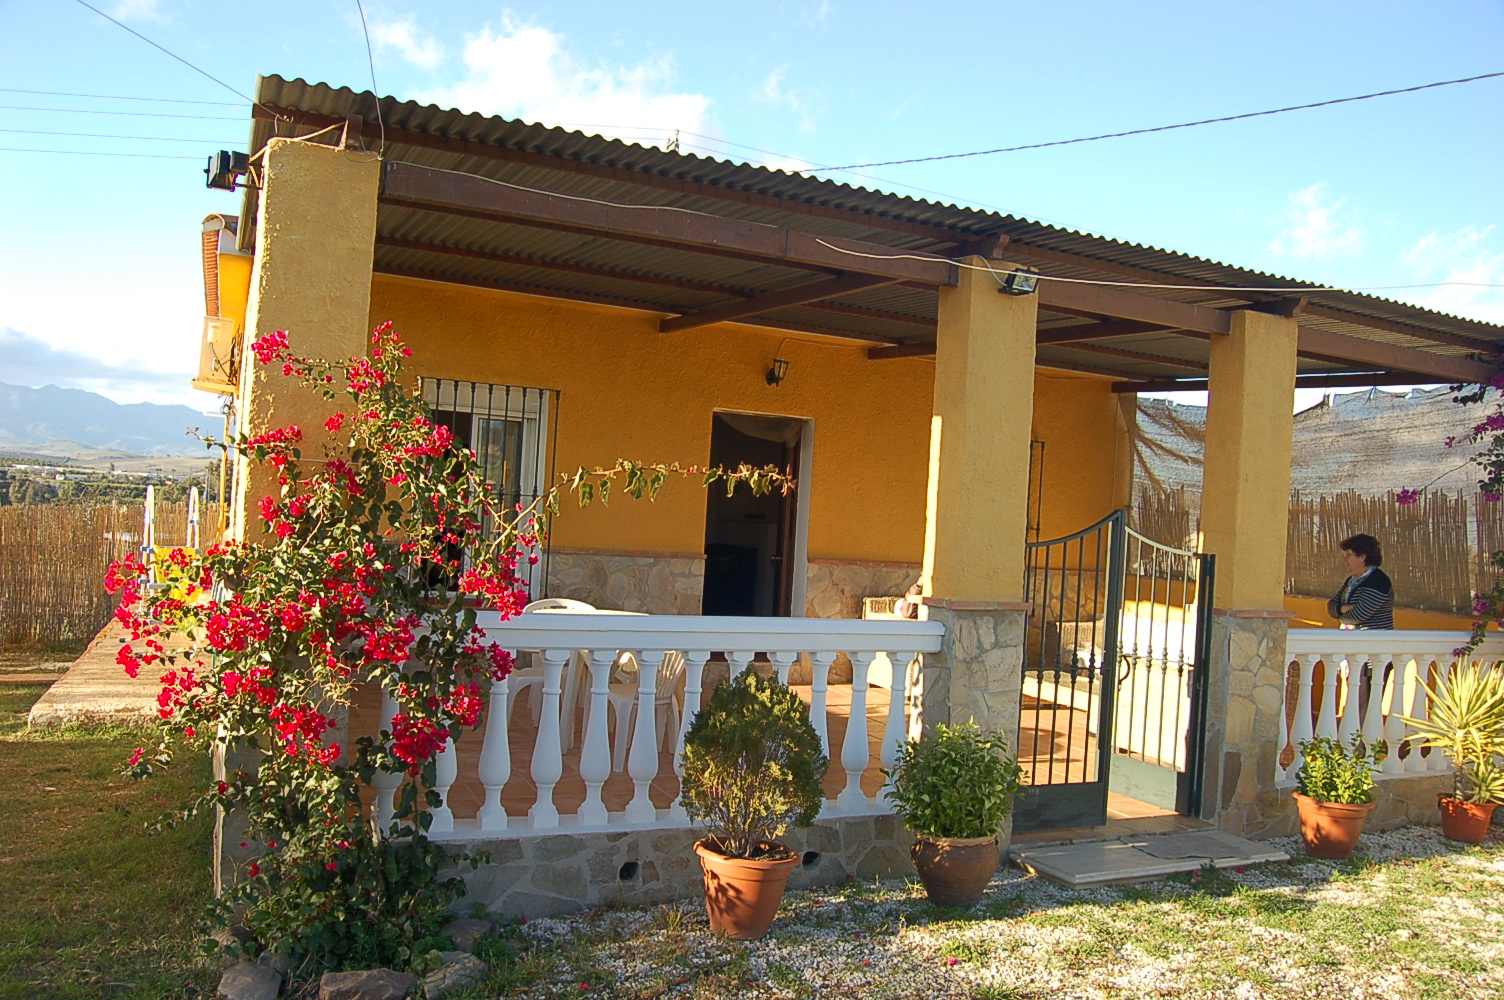 RiS 238 – Charming two bed country cottage with land in Cortijo Fernándeze – 210,000€